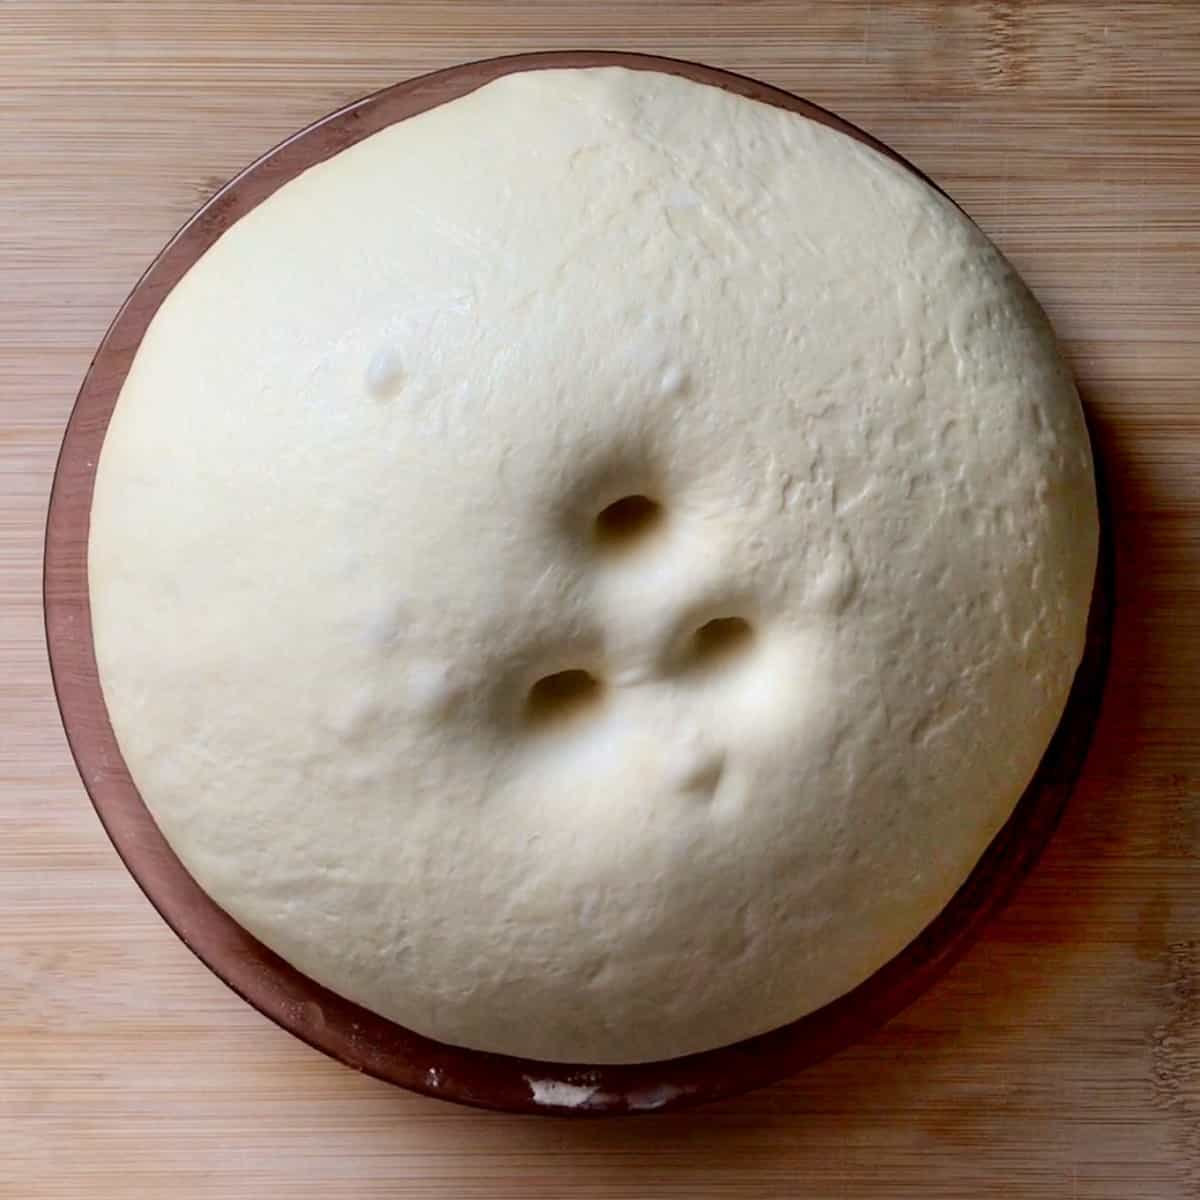 Proofed dough with finger indentations.